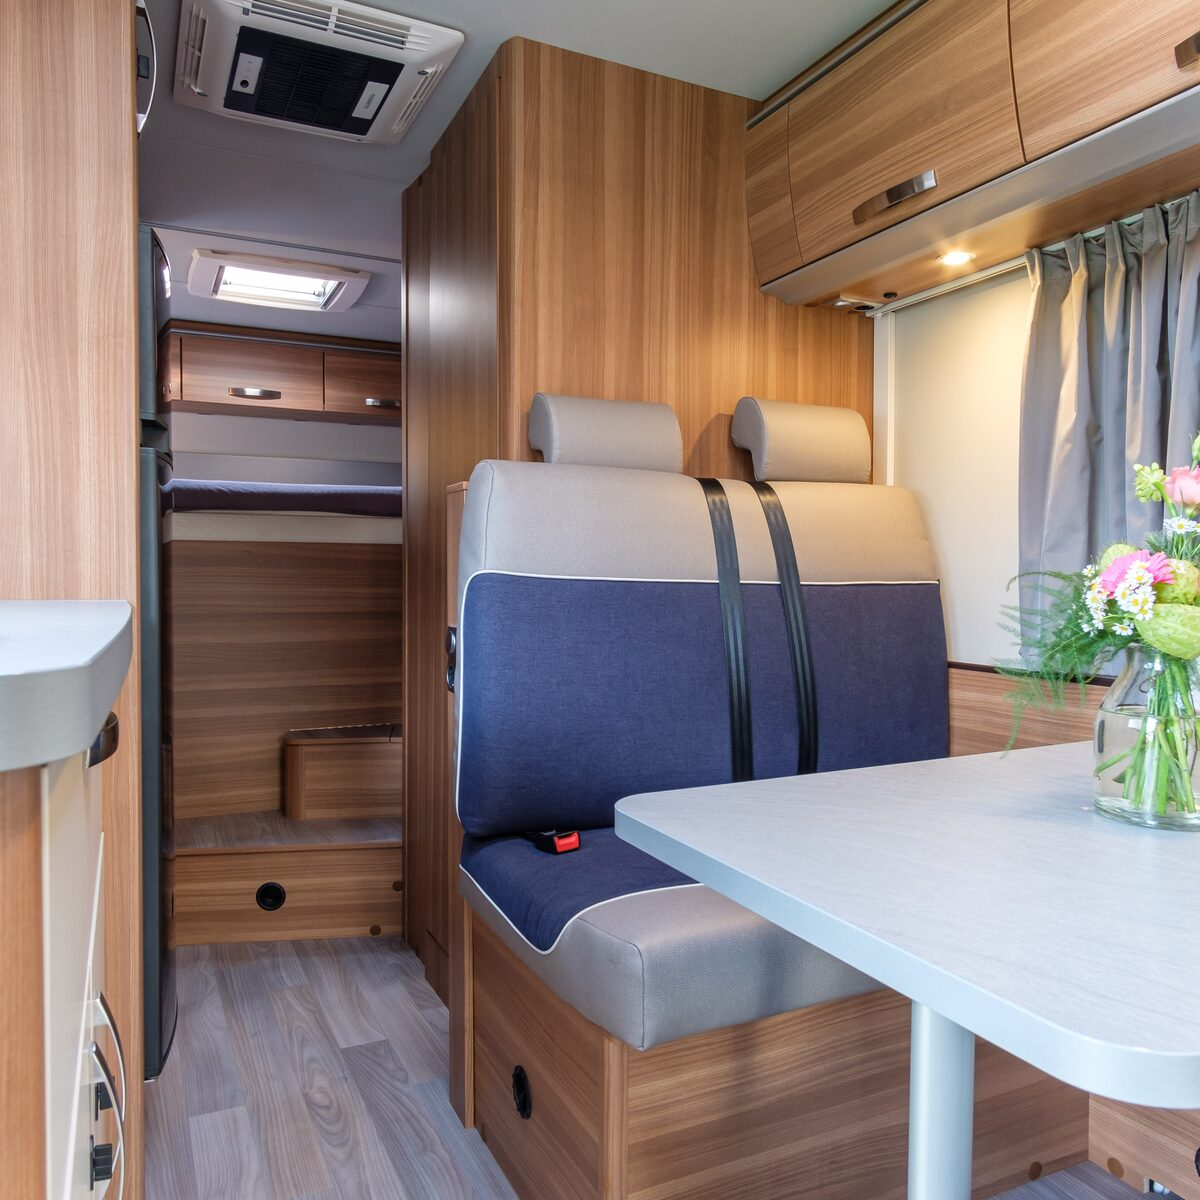 Camper for 5 people